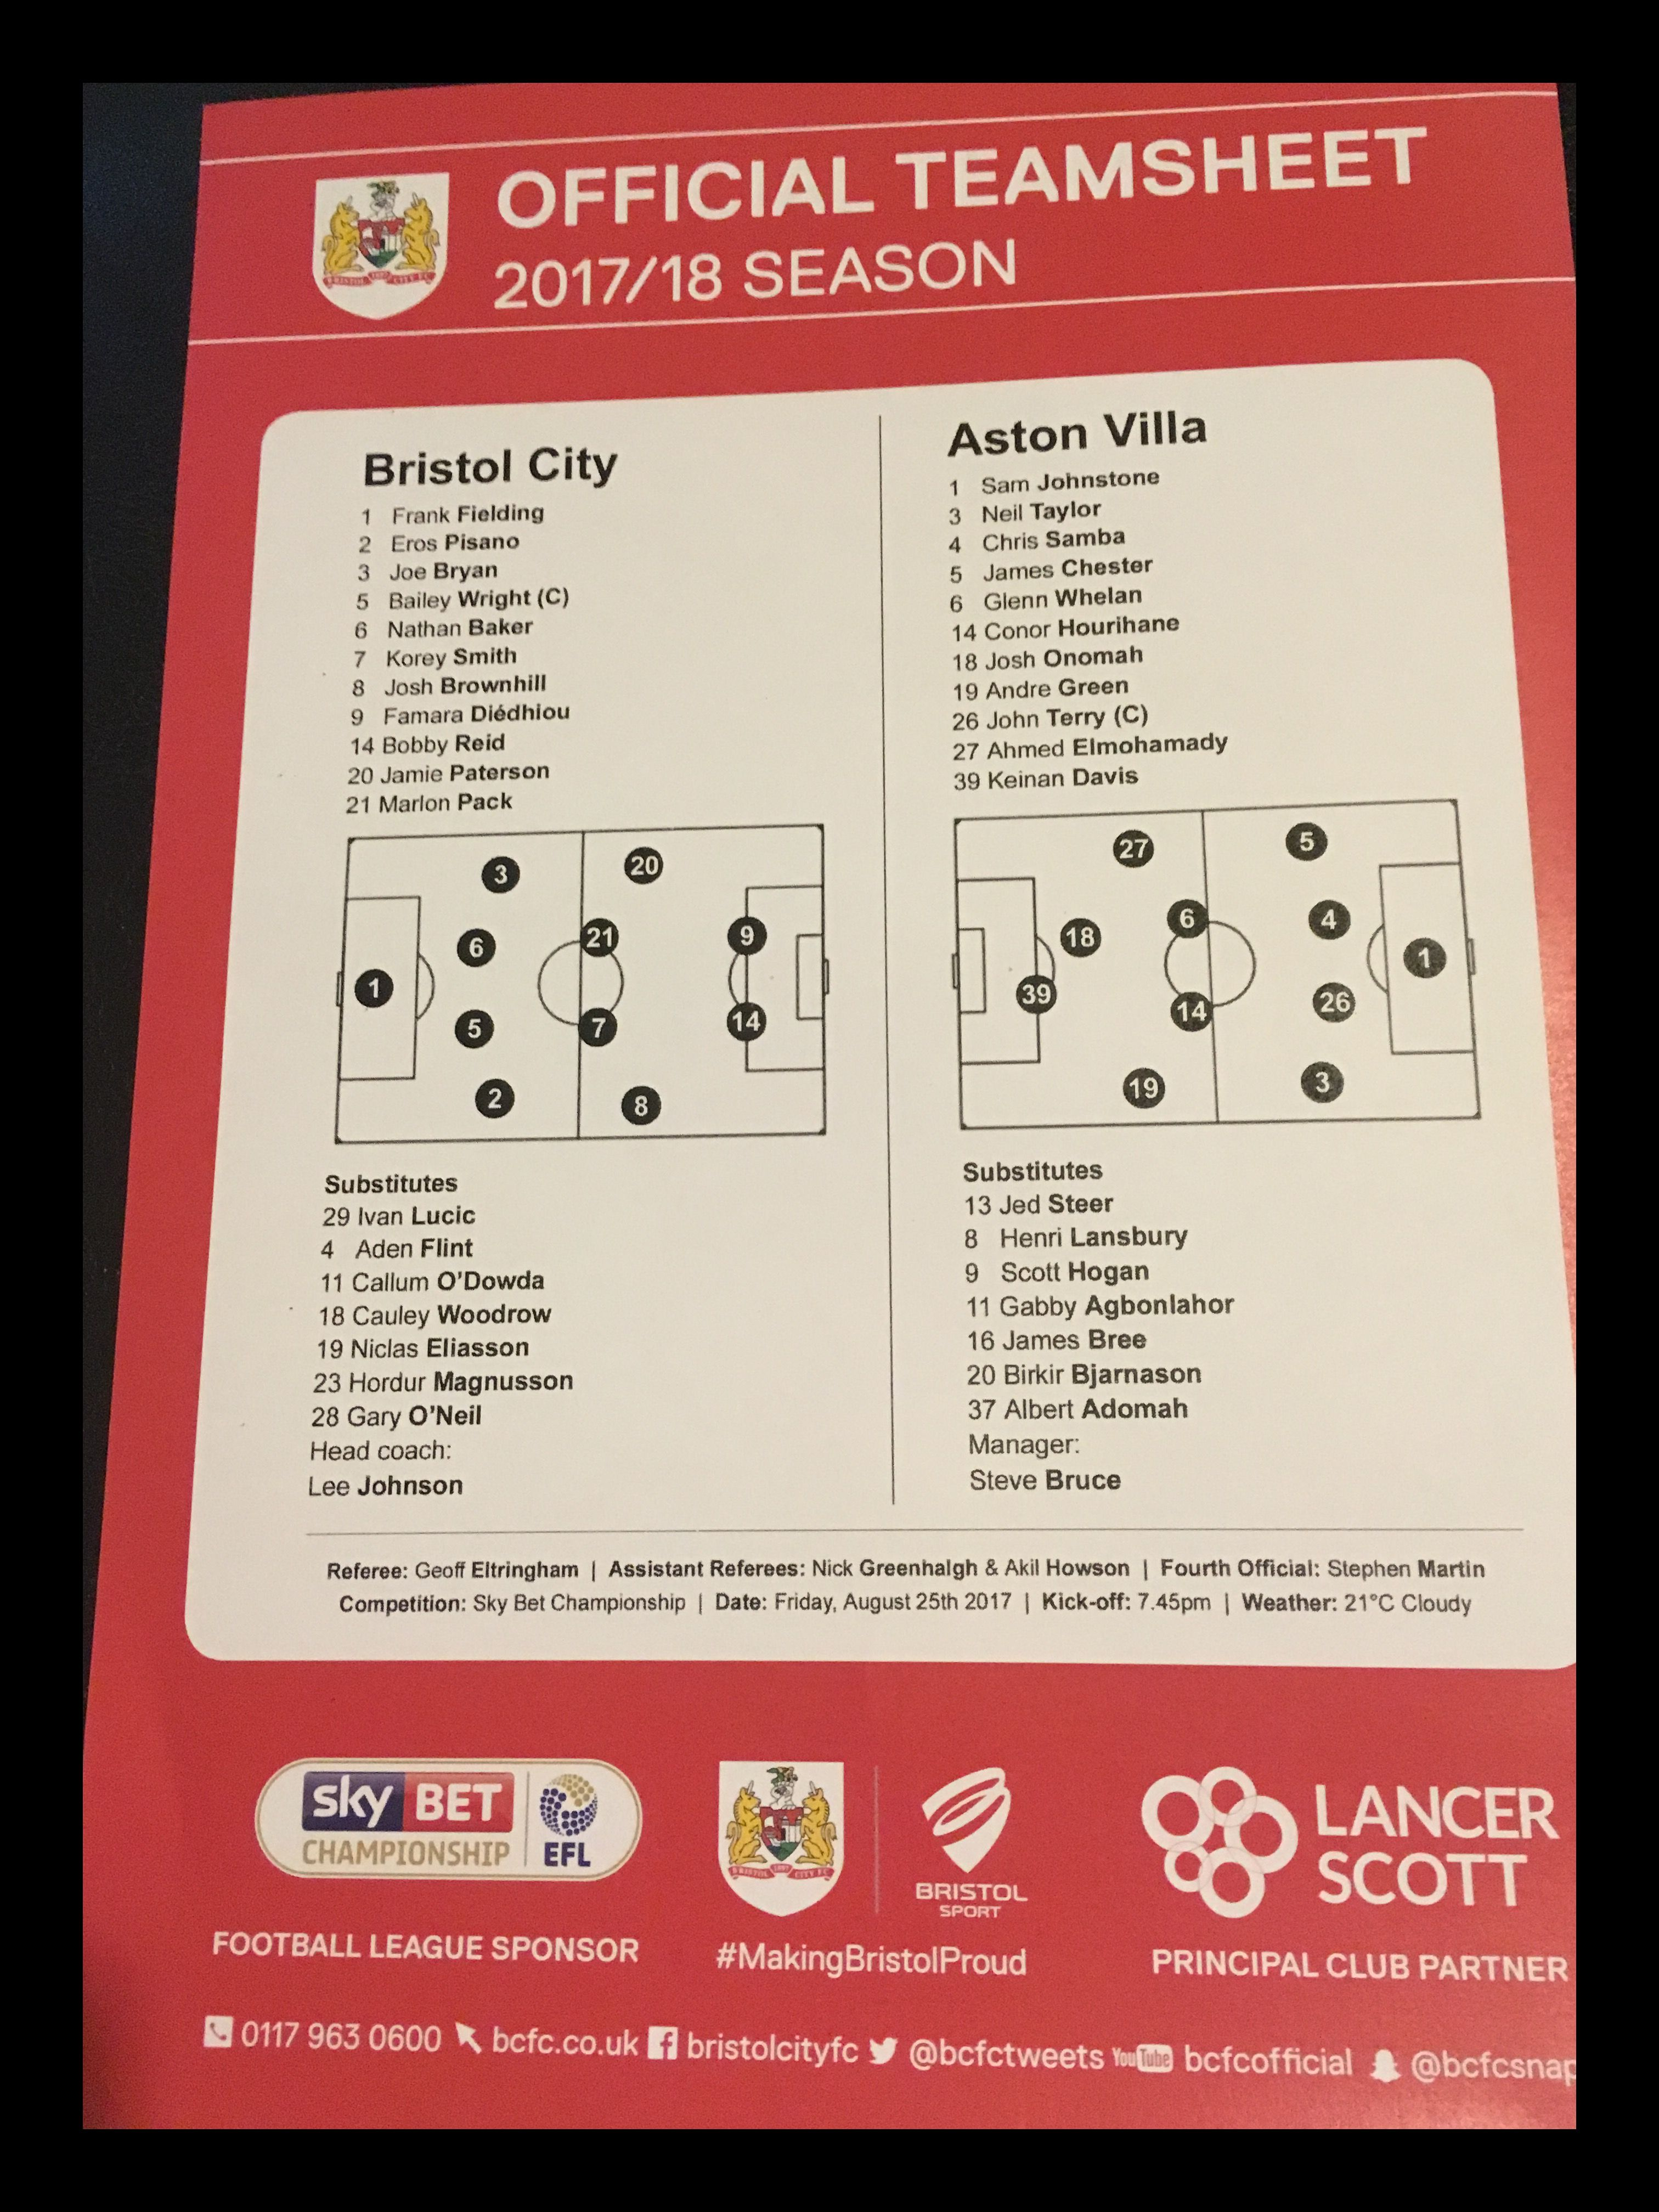 Bristol City v Aston Villa 25-08-17 Team Sheet